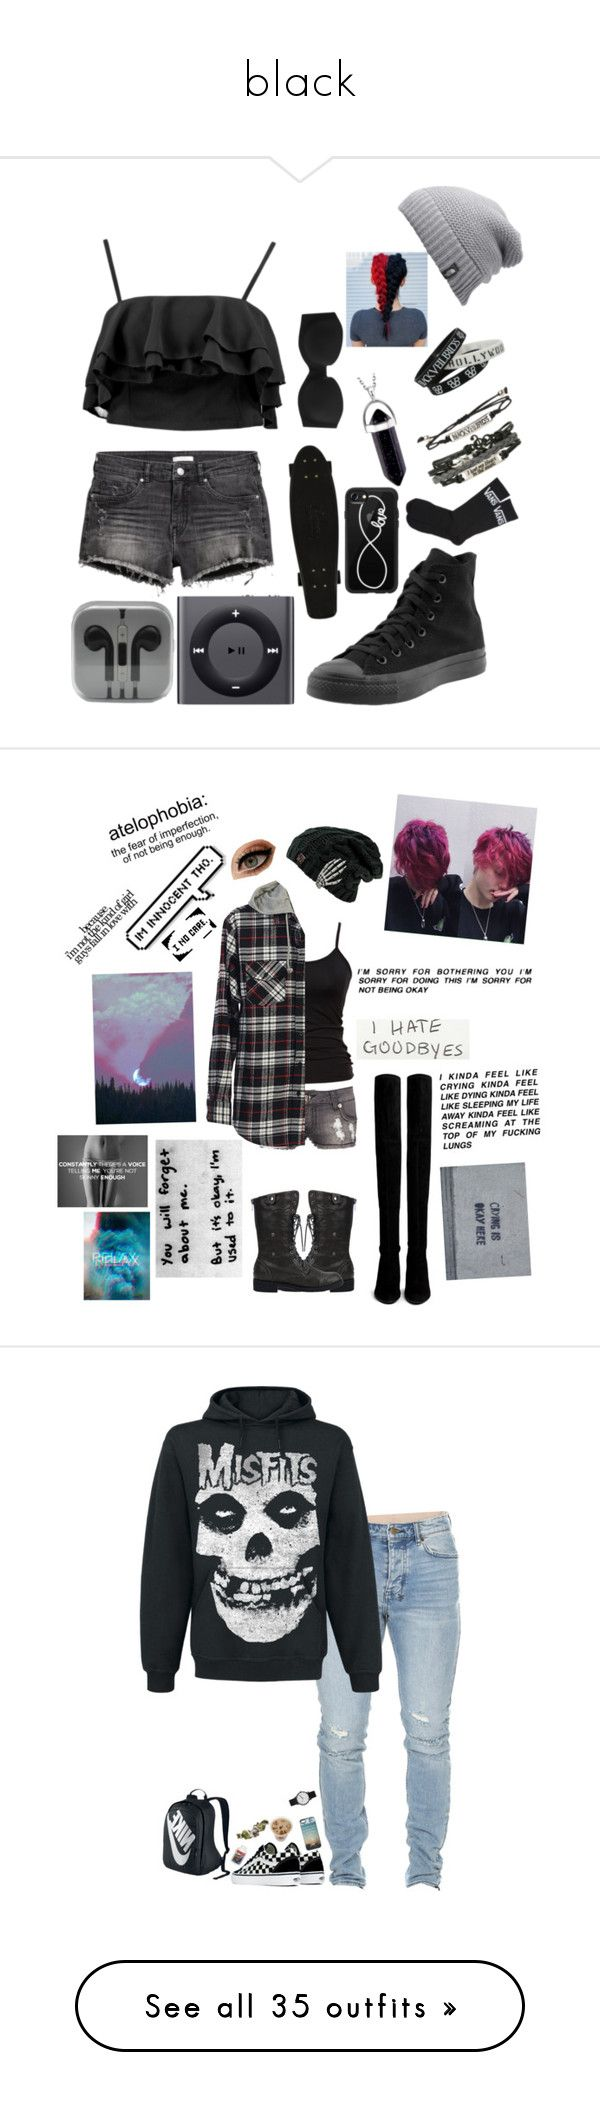 """black"" by squarely-asleep ❤ liked on Polyvore featuring H&M, Boohoo, Calvin Klein Underwear, The North Face, Converse, Apple, Casetify, Hot Topic, Vans and French Connection"